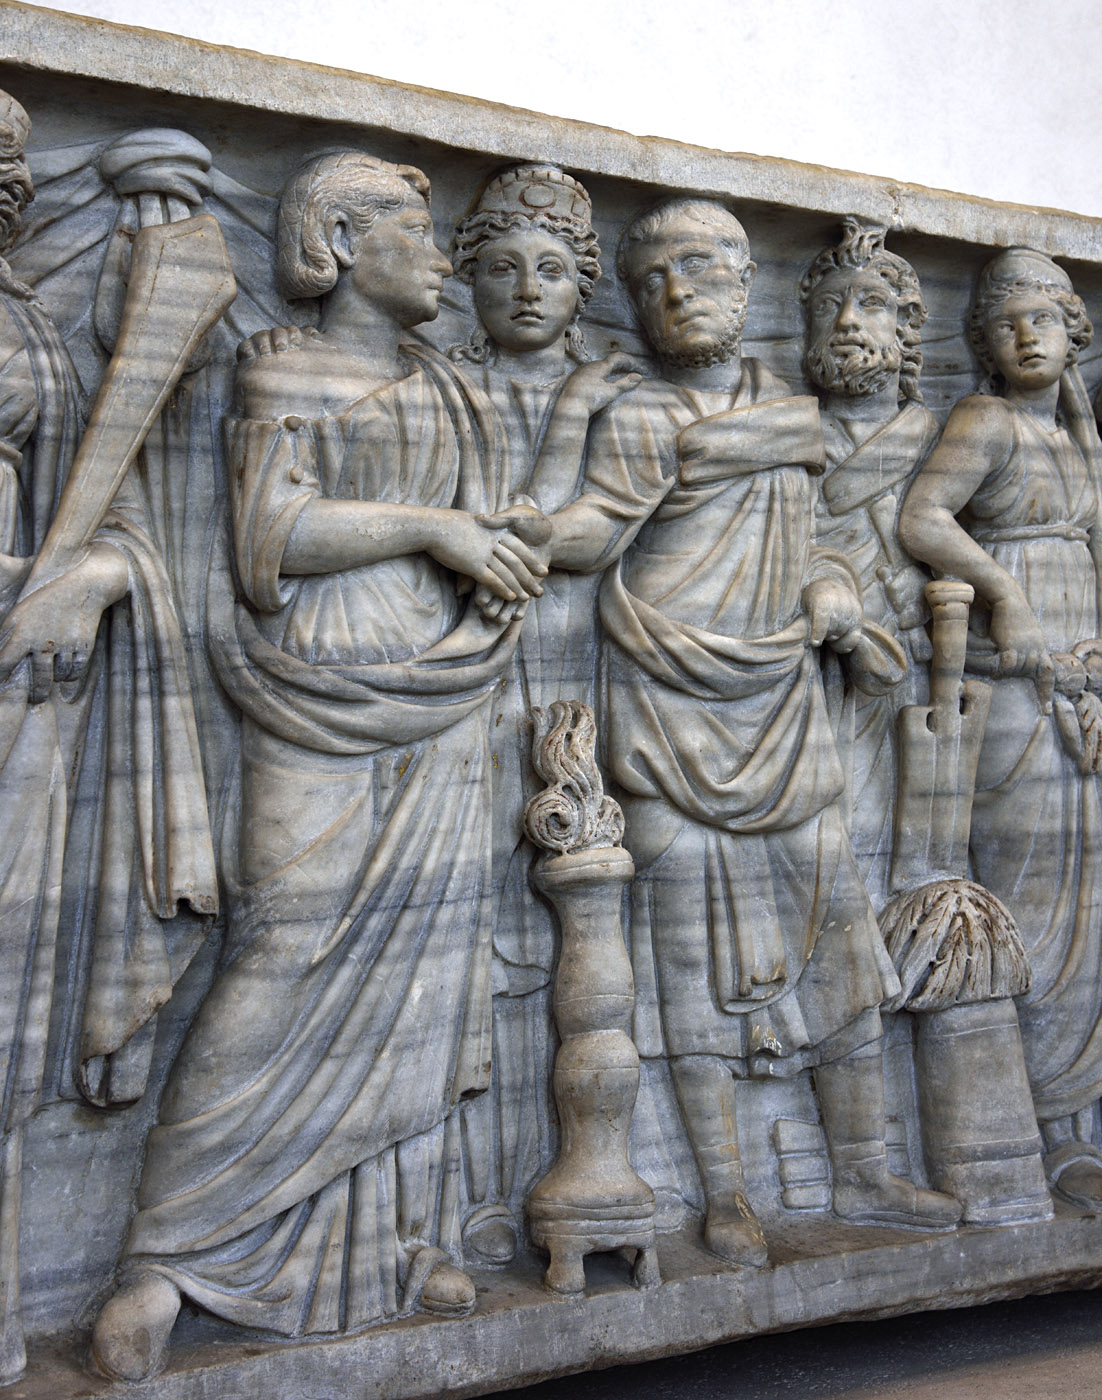 Sarcophagus of a married couple with personifications of Portus, Annona, Concordia, Genius Senati, Abundantia and Africa (close-up). Front panel. Marble. 270—280 CE. Rome, Roman National Museum, Palazzo Massimo alle Terme